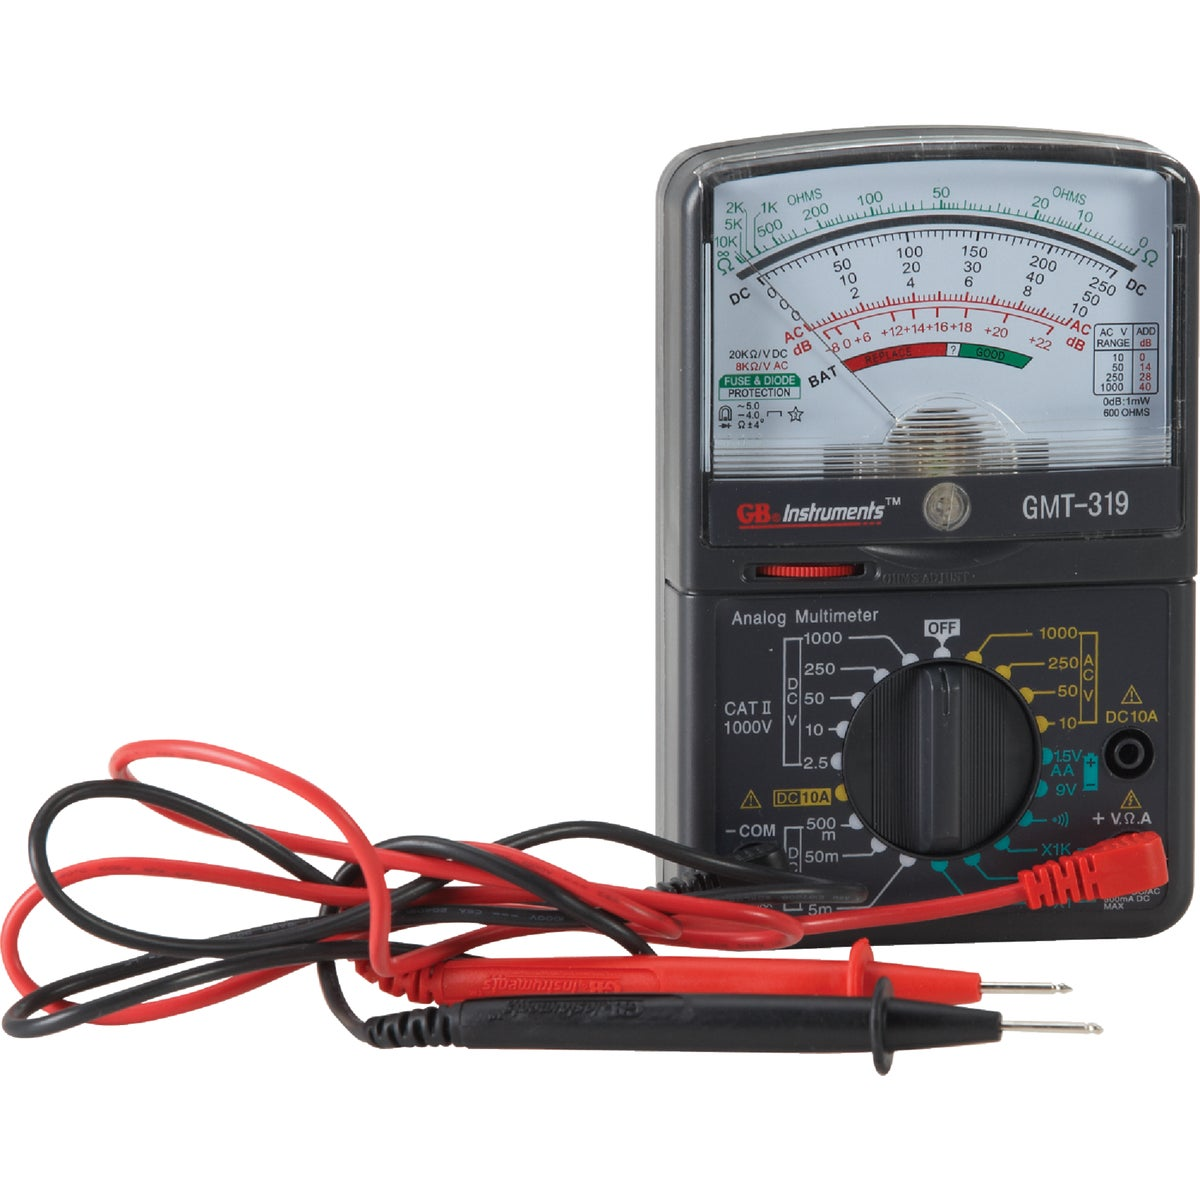 MULTI-TESTER - GMT-319 by G B Electrical Inc